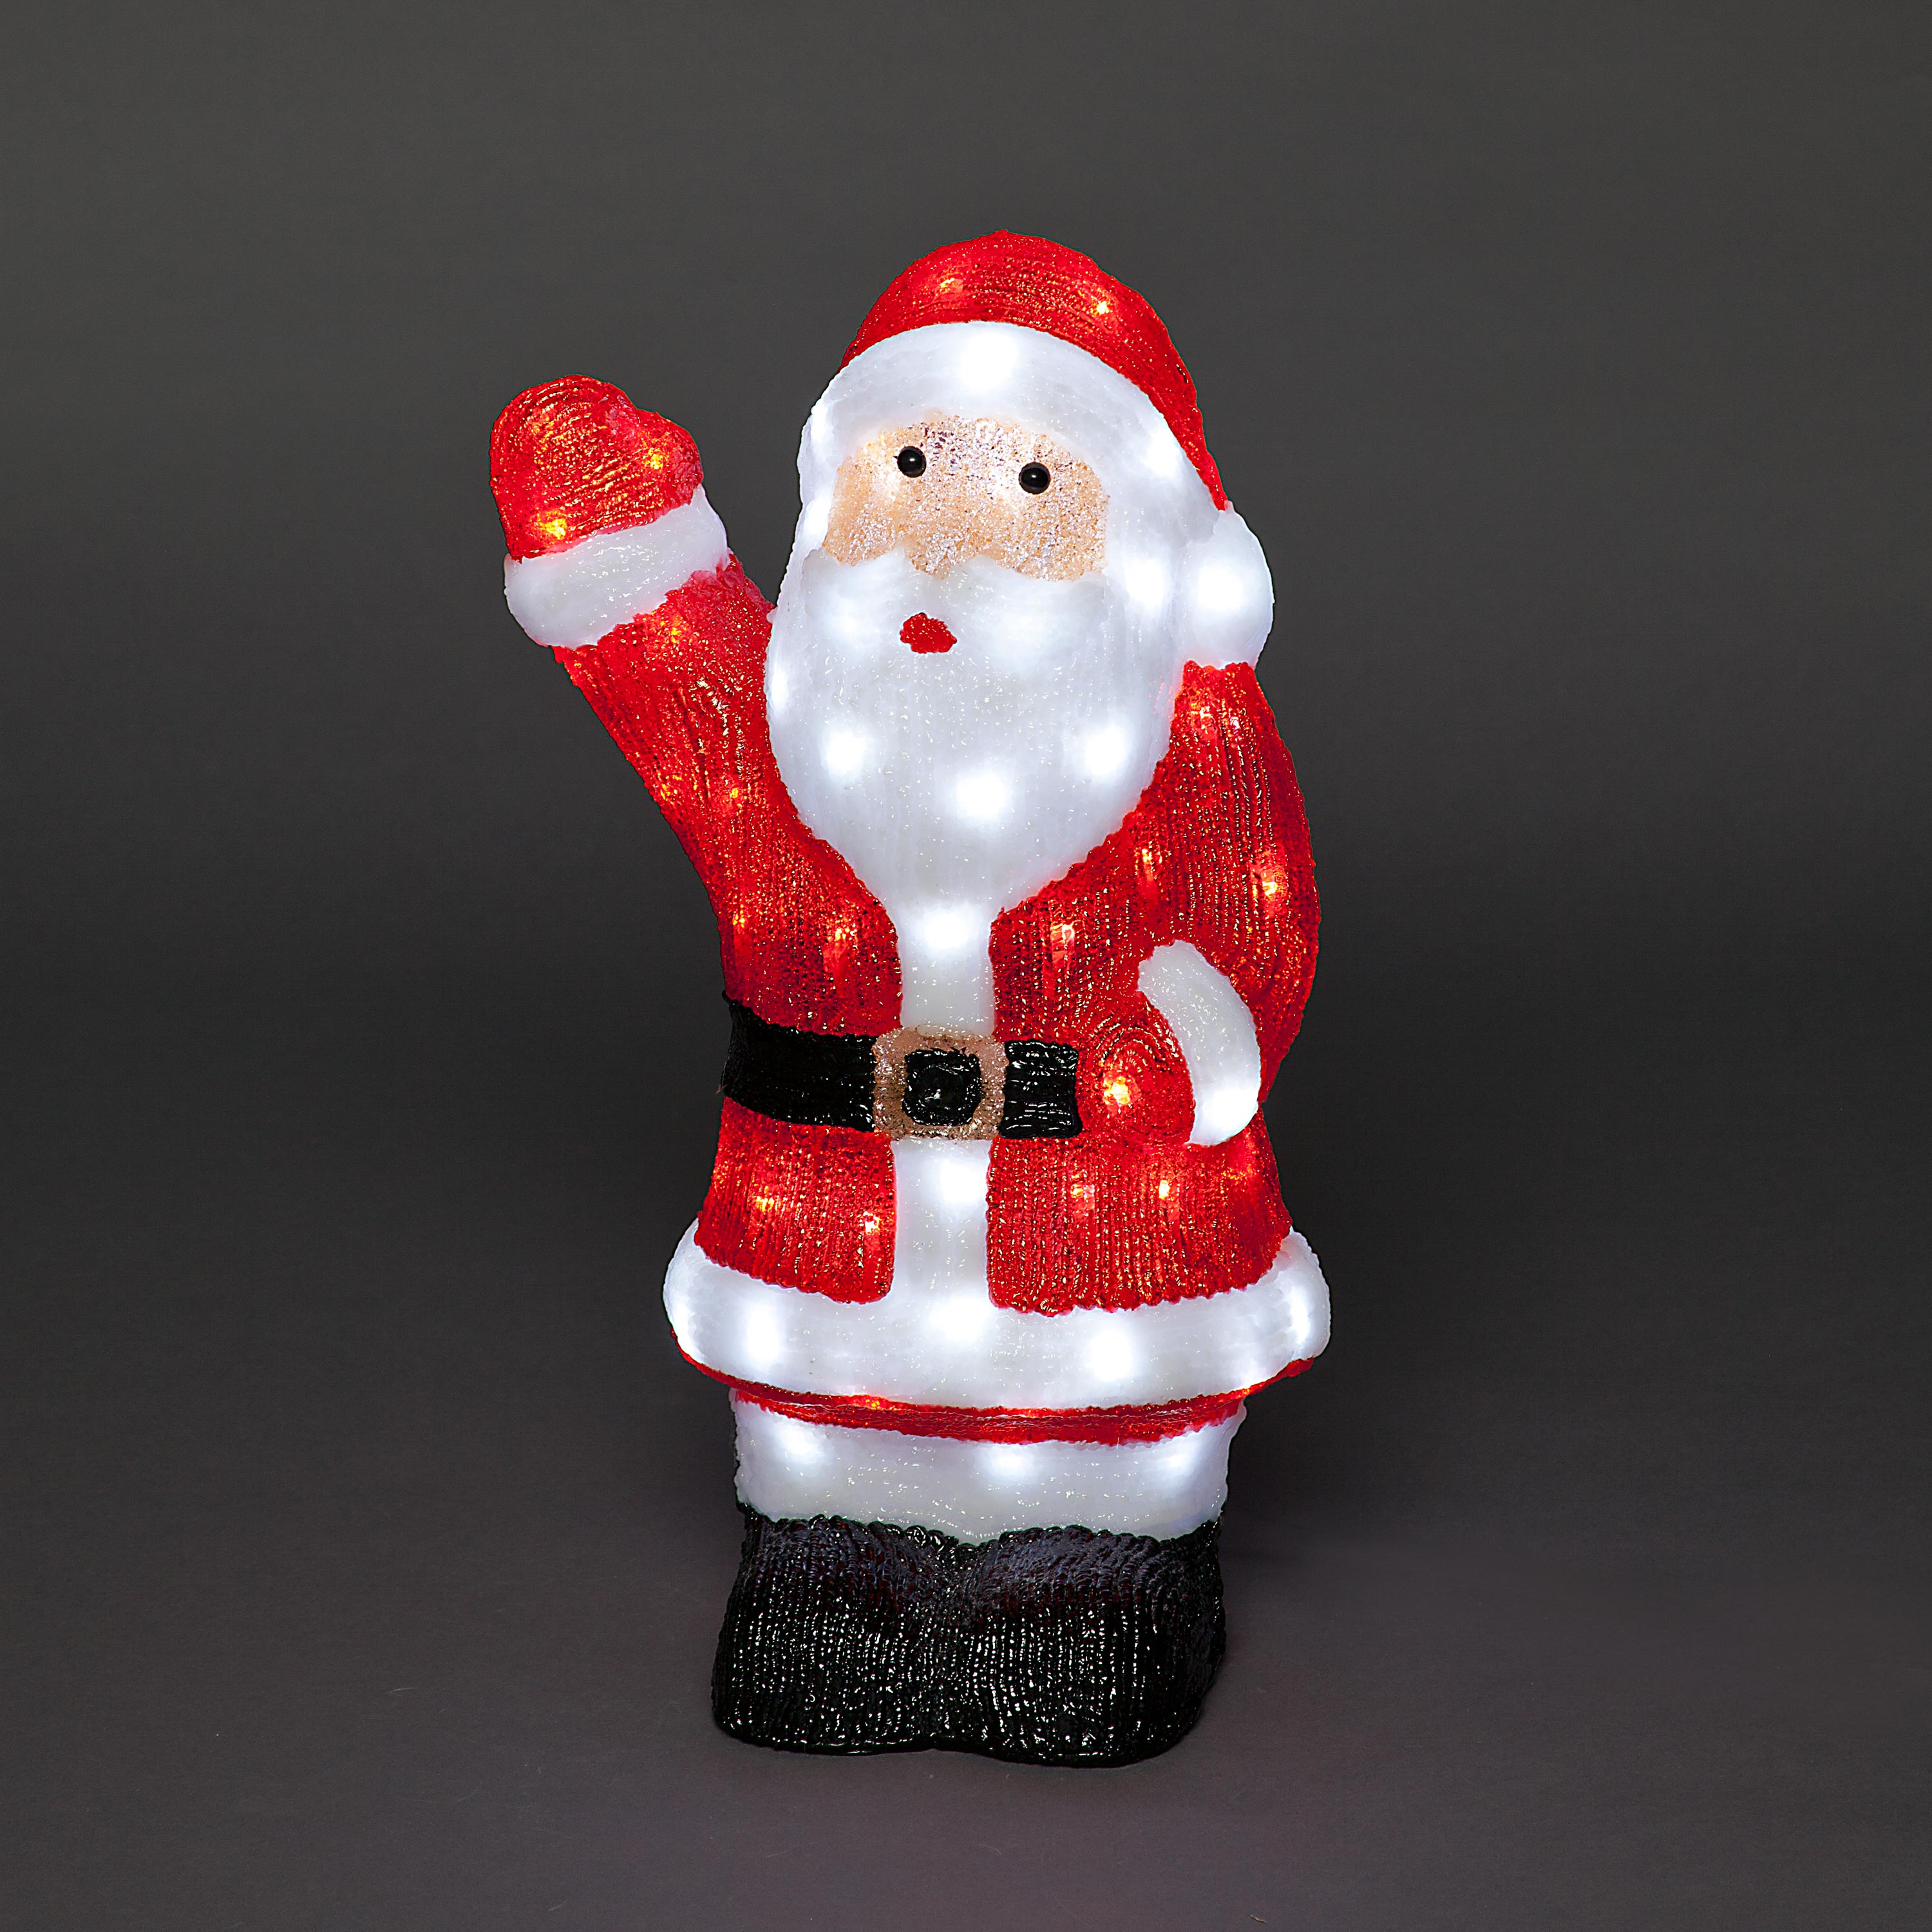 54cm Acrylic Waving Santa Claus with 80 Ice White LED Lights